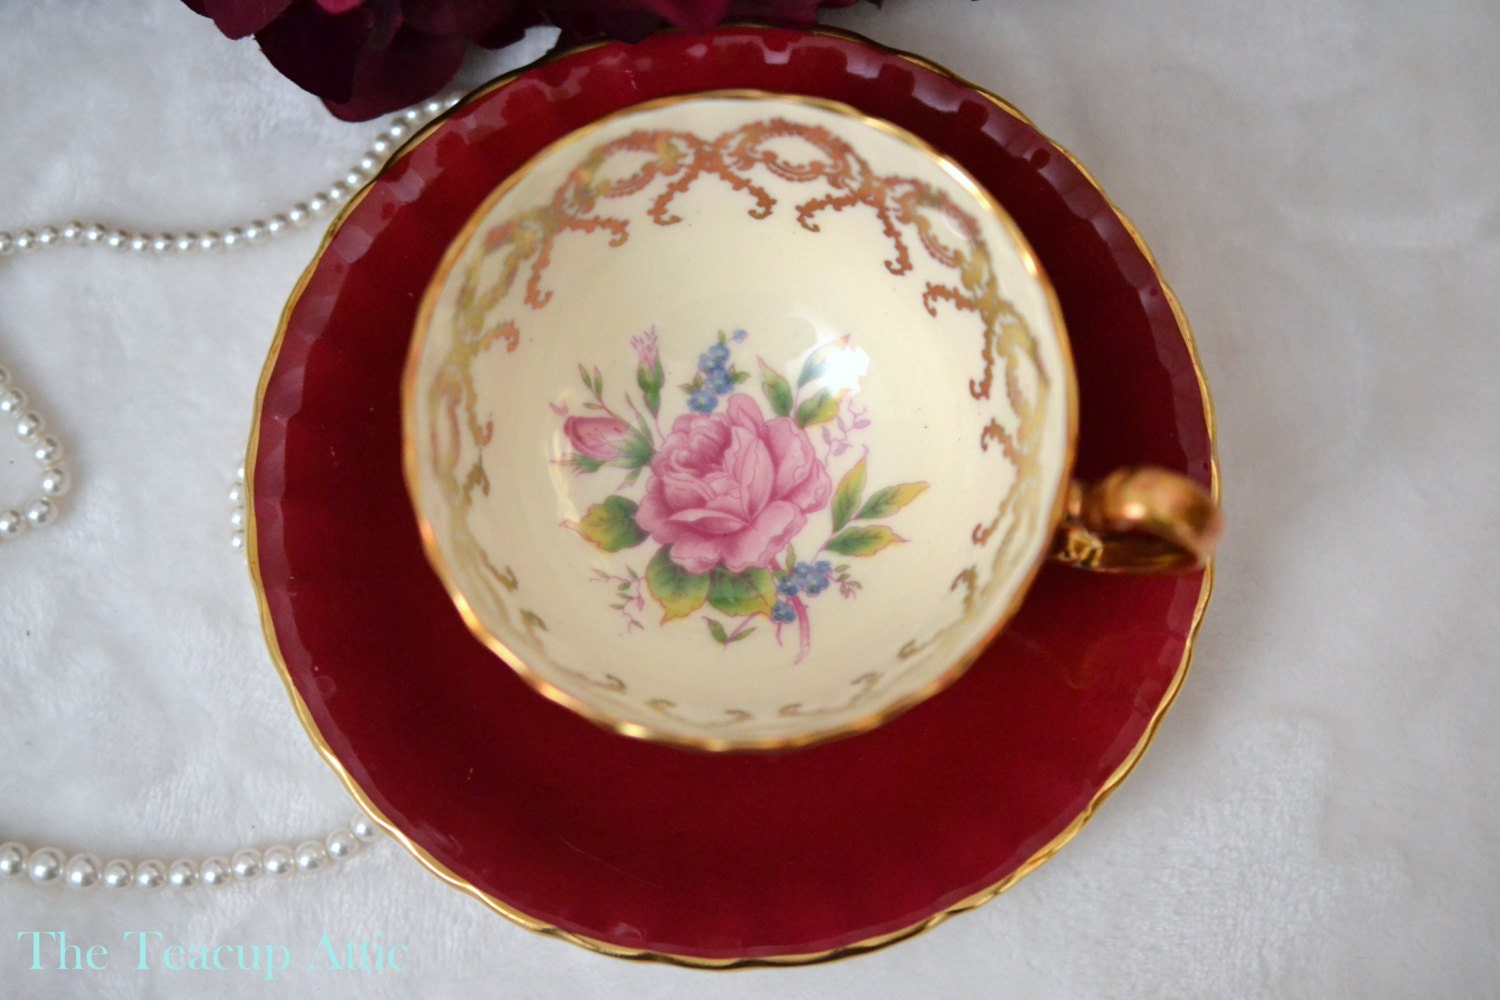 ON SALE Aynsley Red Teacup and Saucer With Pink Roses , English Bone China, Cabinet Collection Teacup, Wedding Gift,  ca. 1939